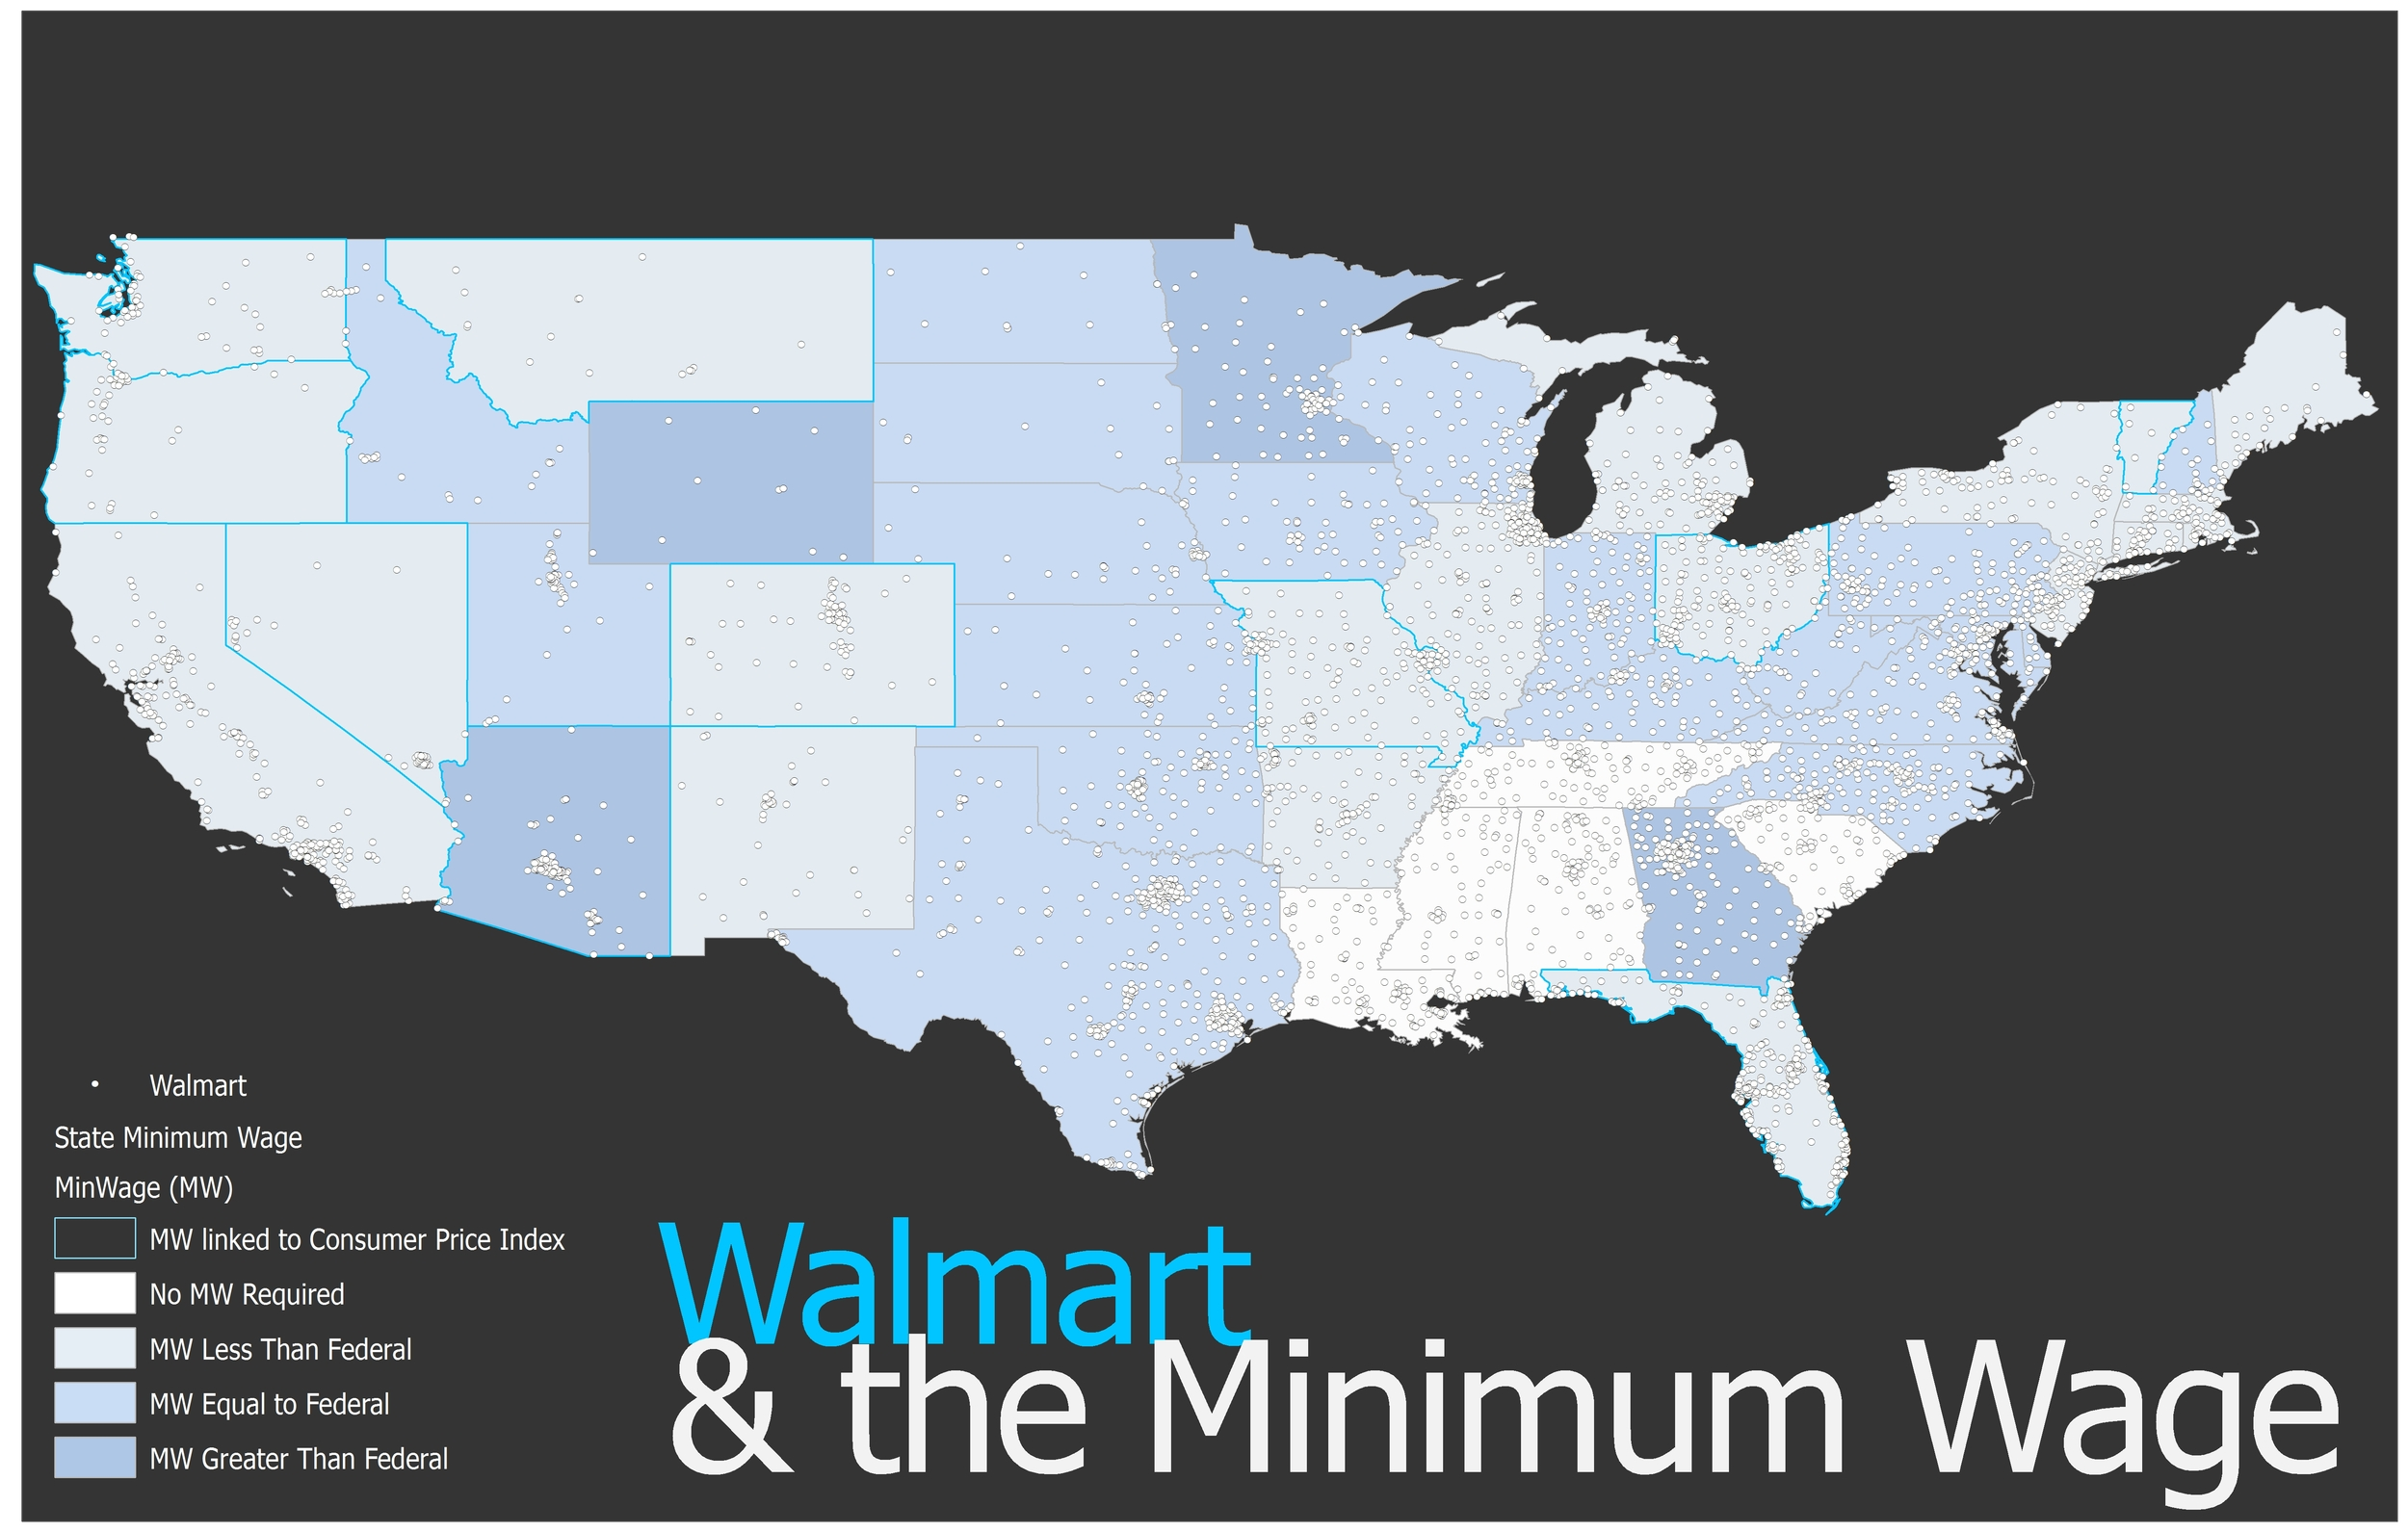 Walmart & the Minimum Wage